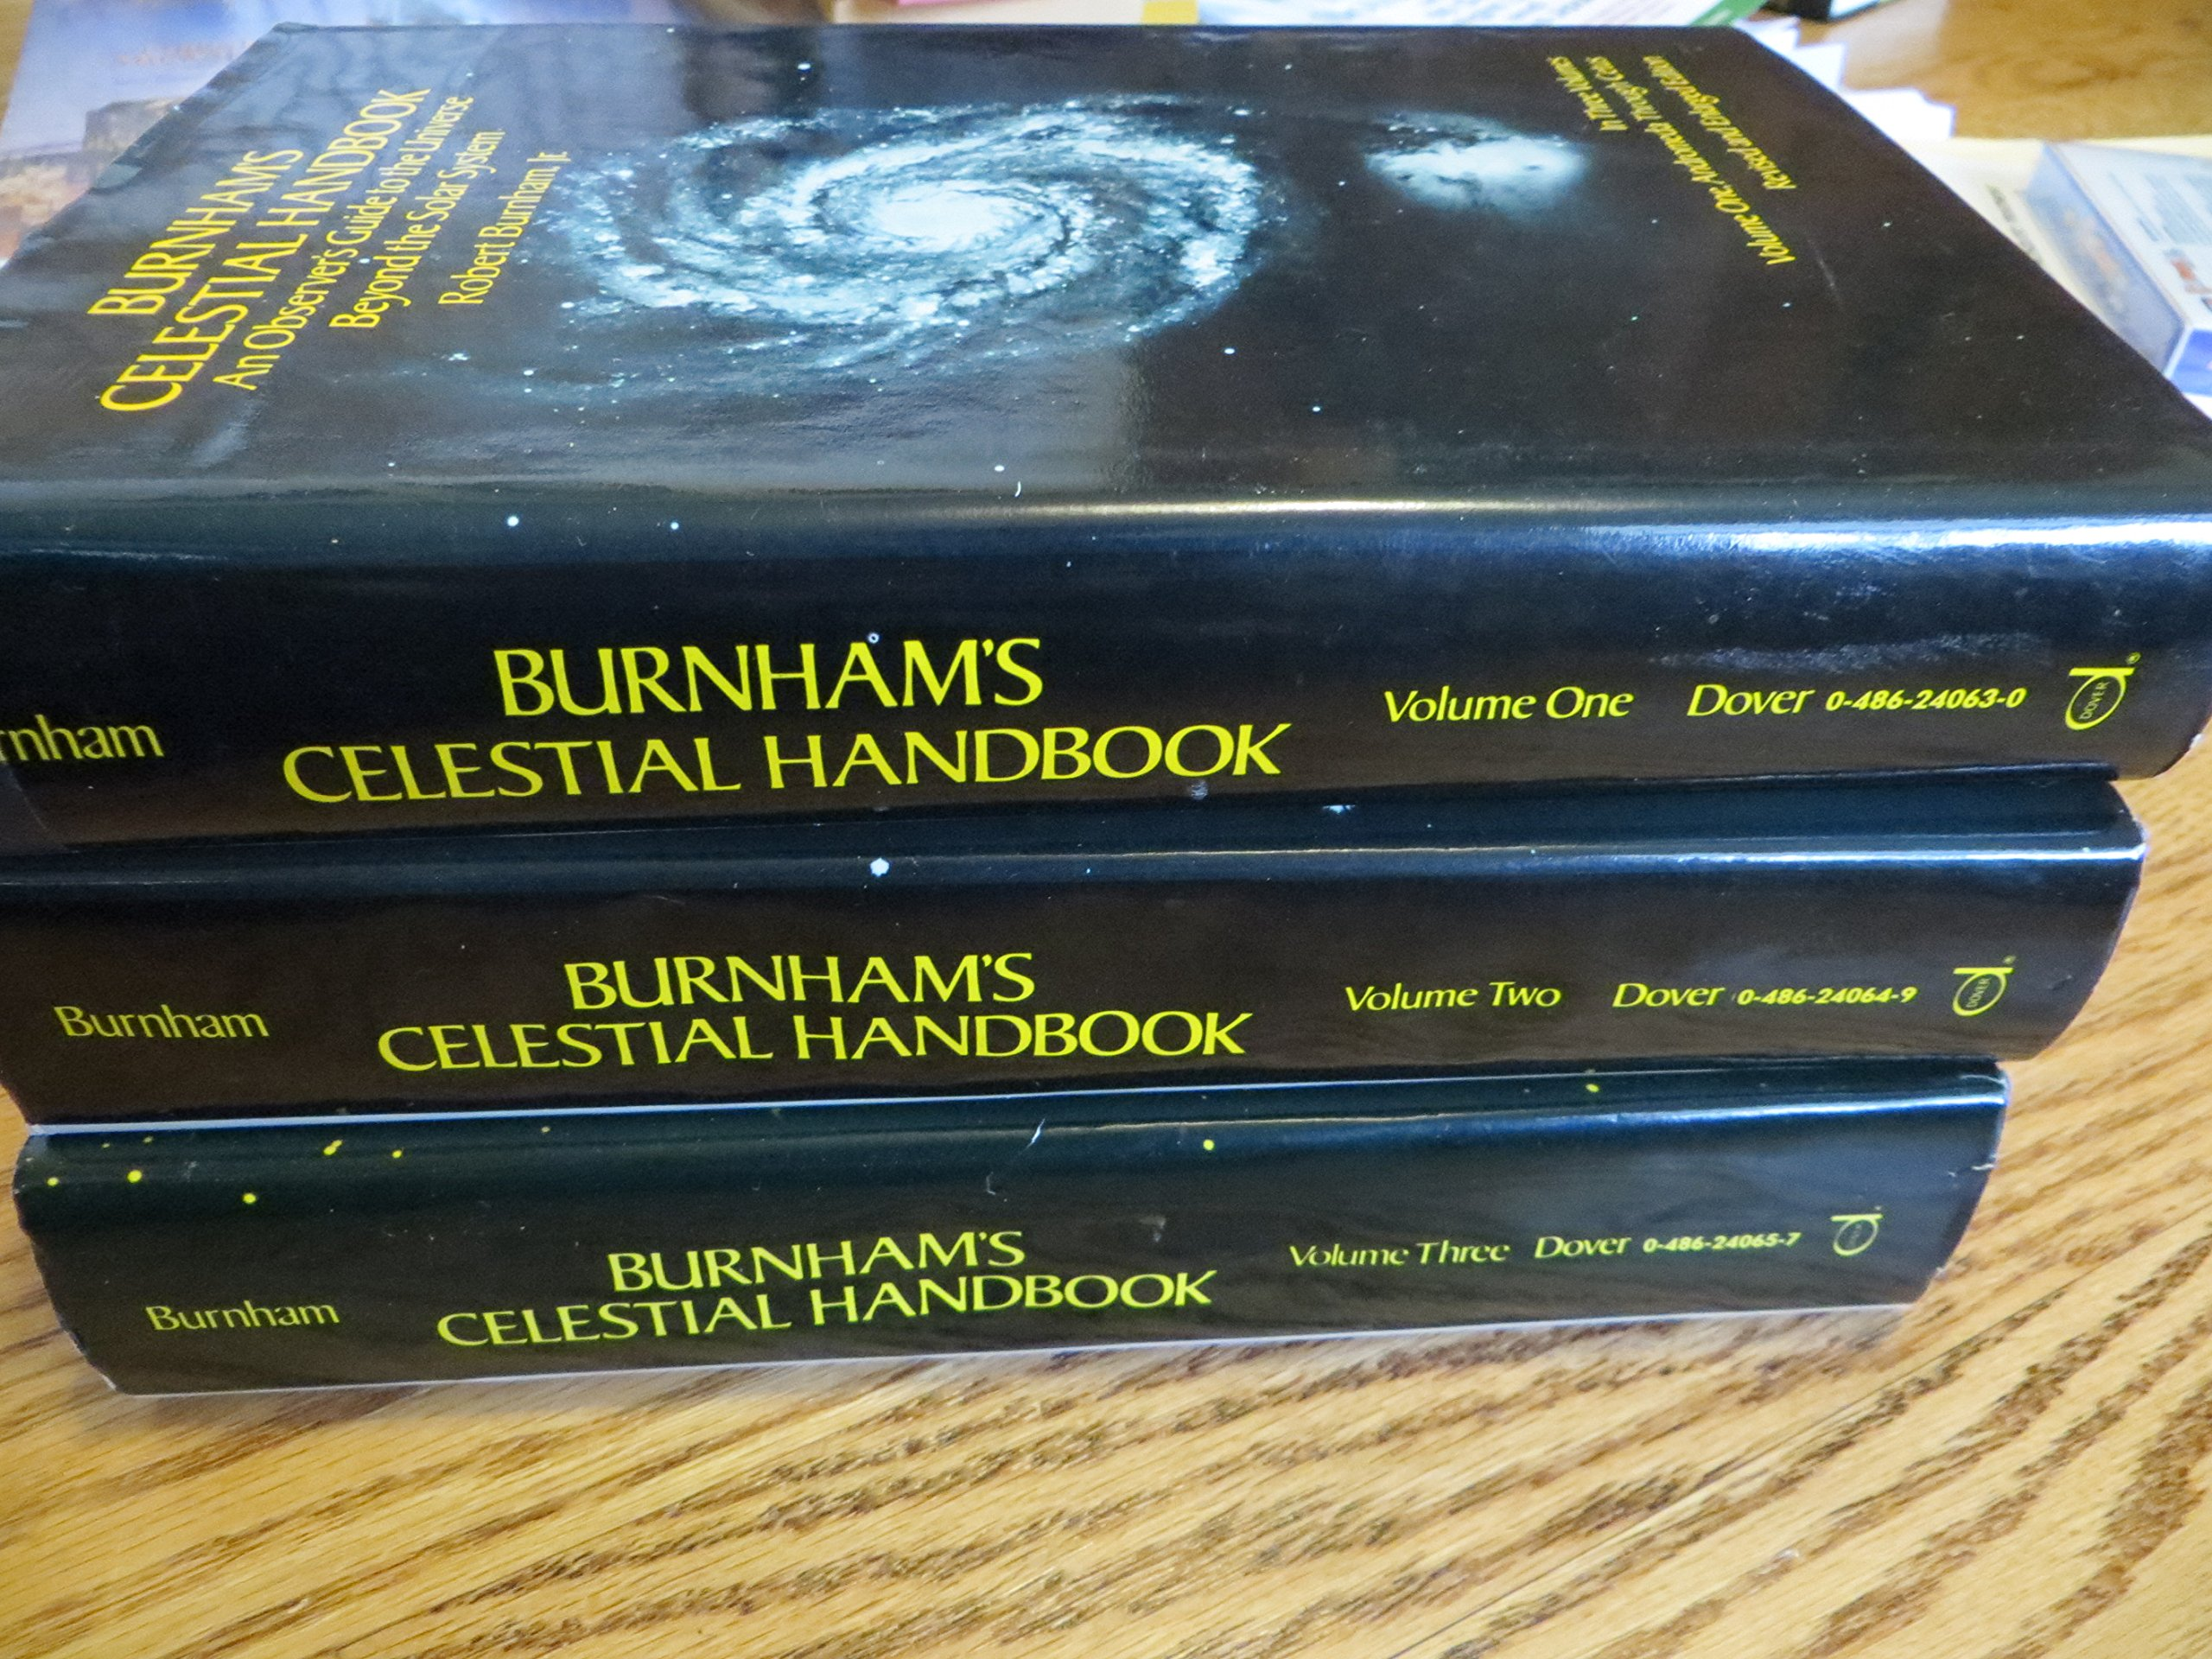 Burnham's Celestial Handbook : An Observer's Guide to the Universe Beyond the Solar System (3 Volumes), Robert  Burnham, Jr.